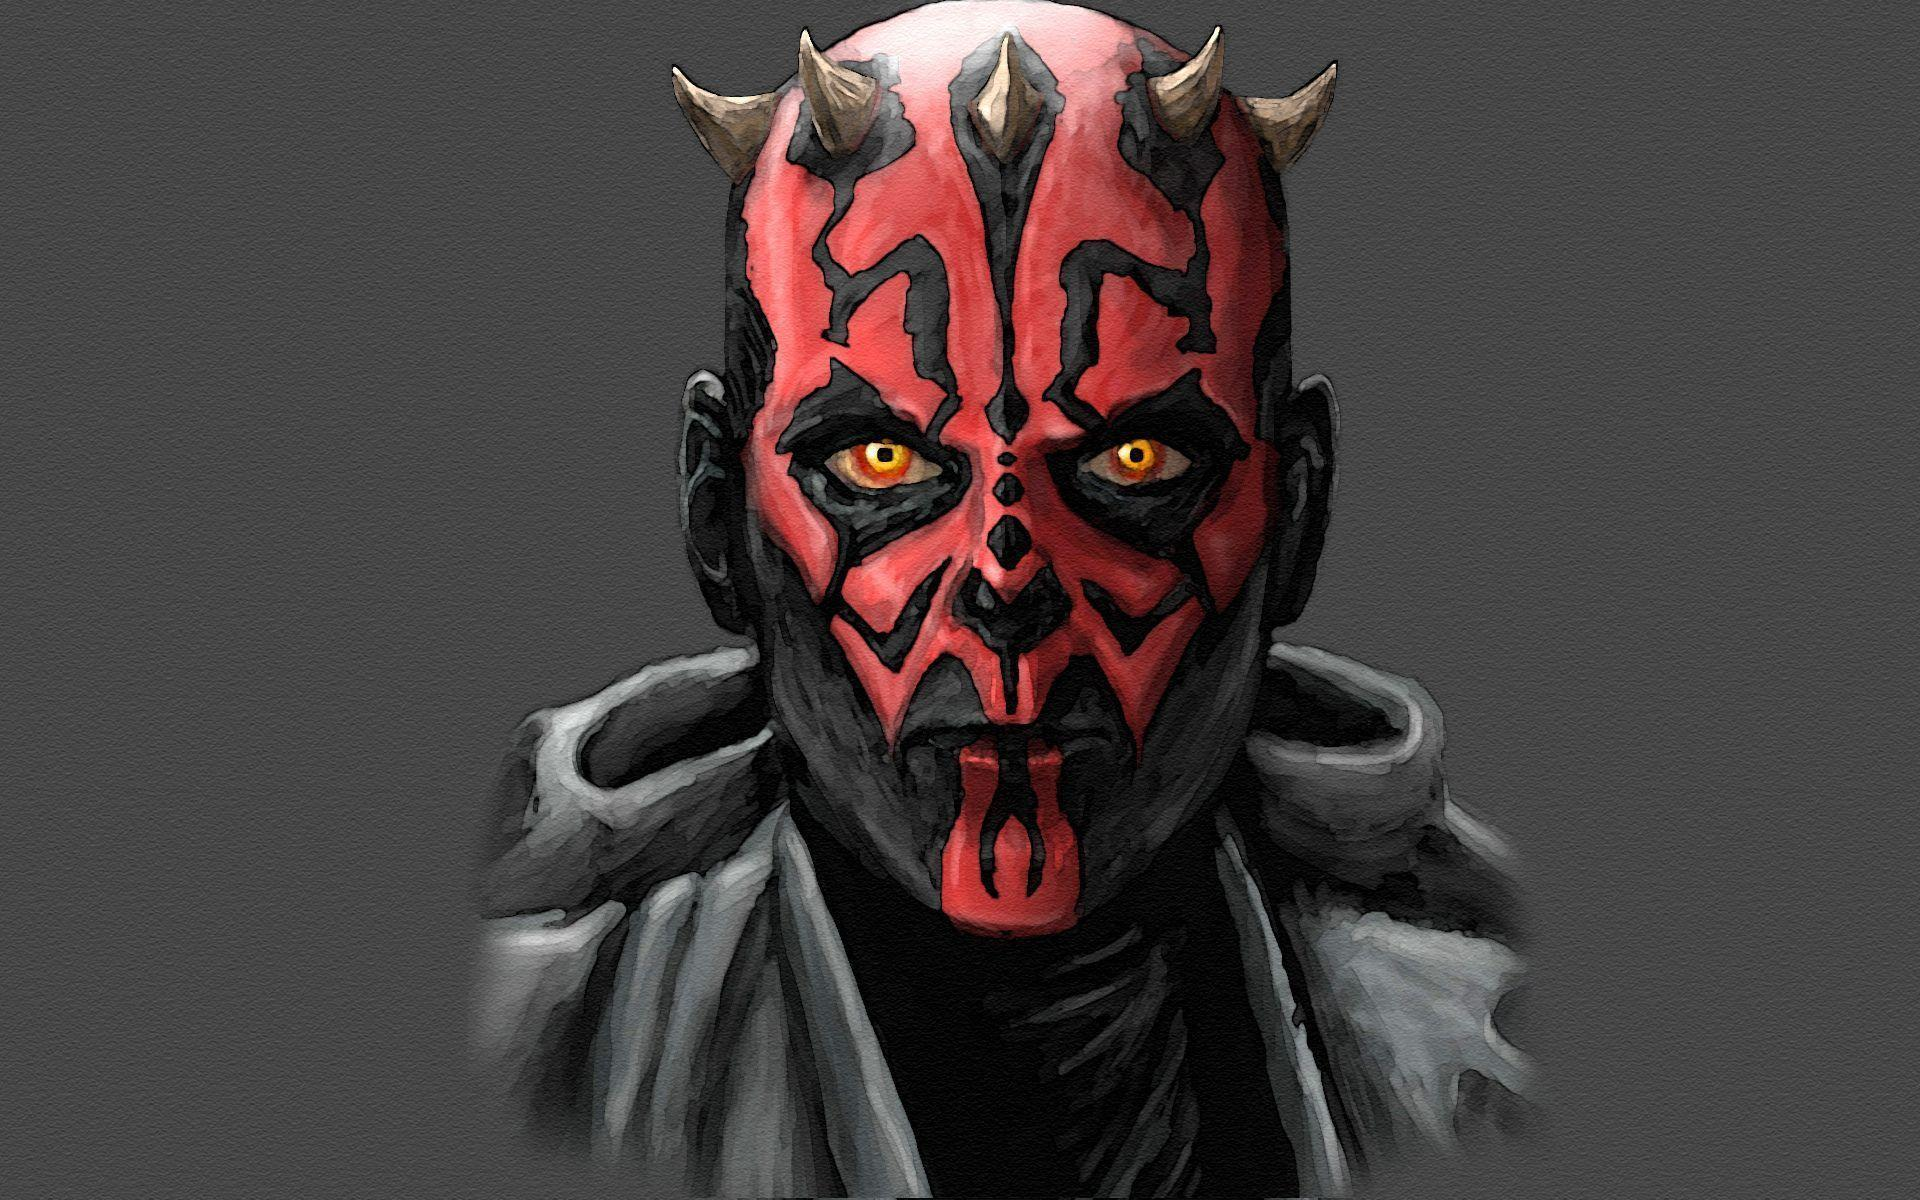 Star wars Sith Darth Maul movies wallpapers